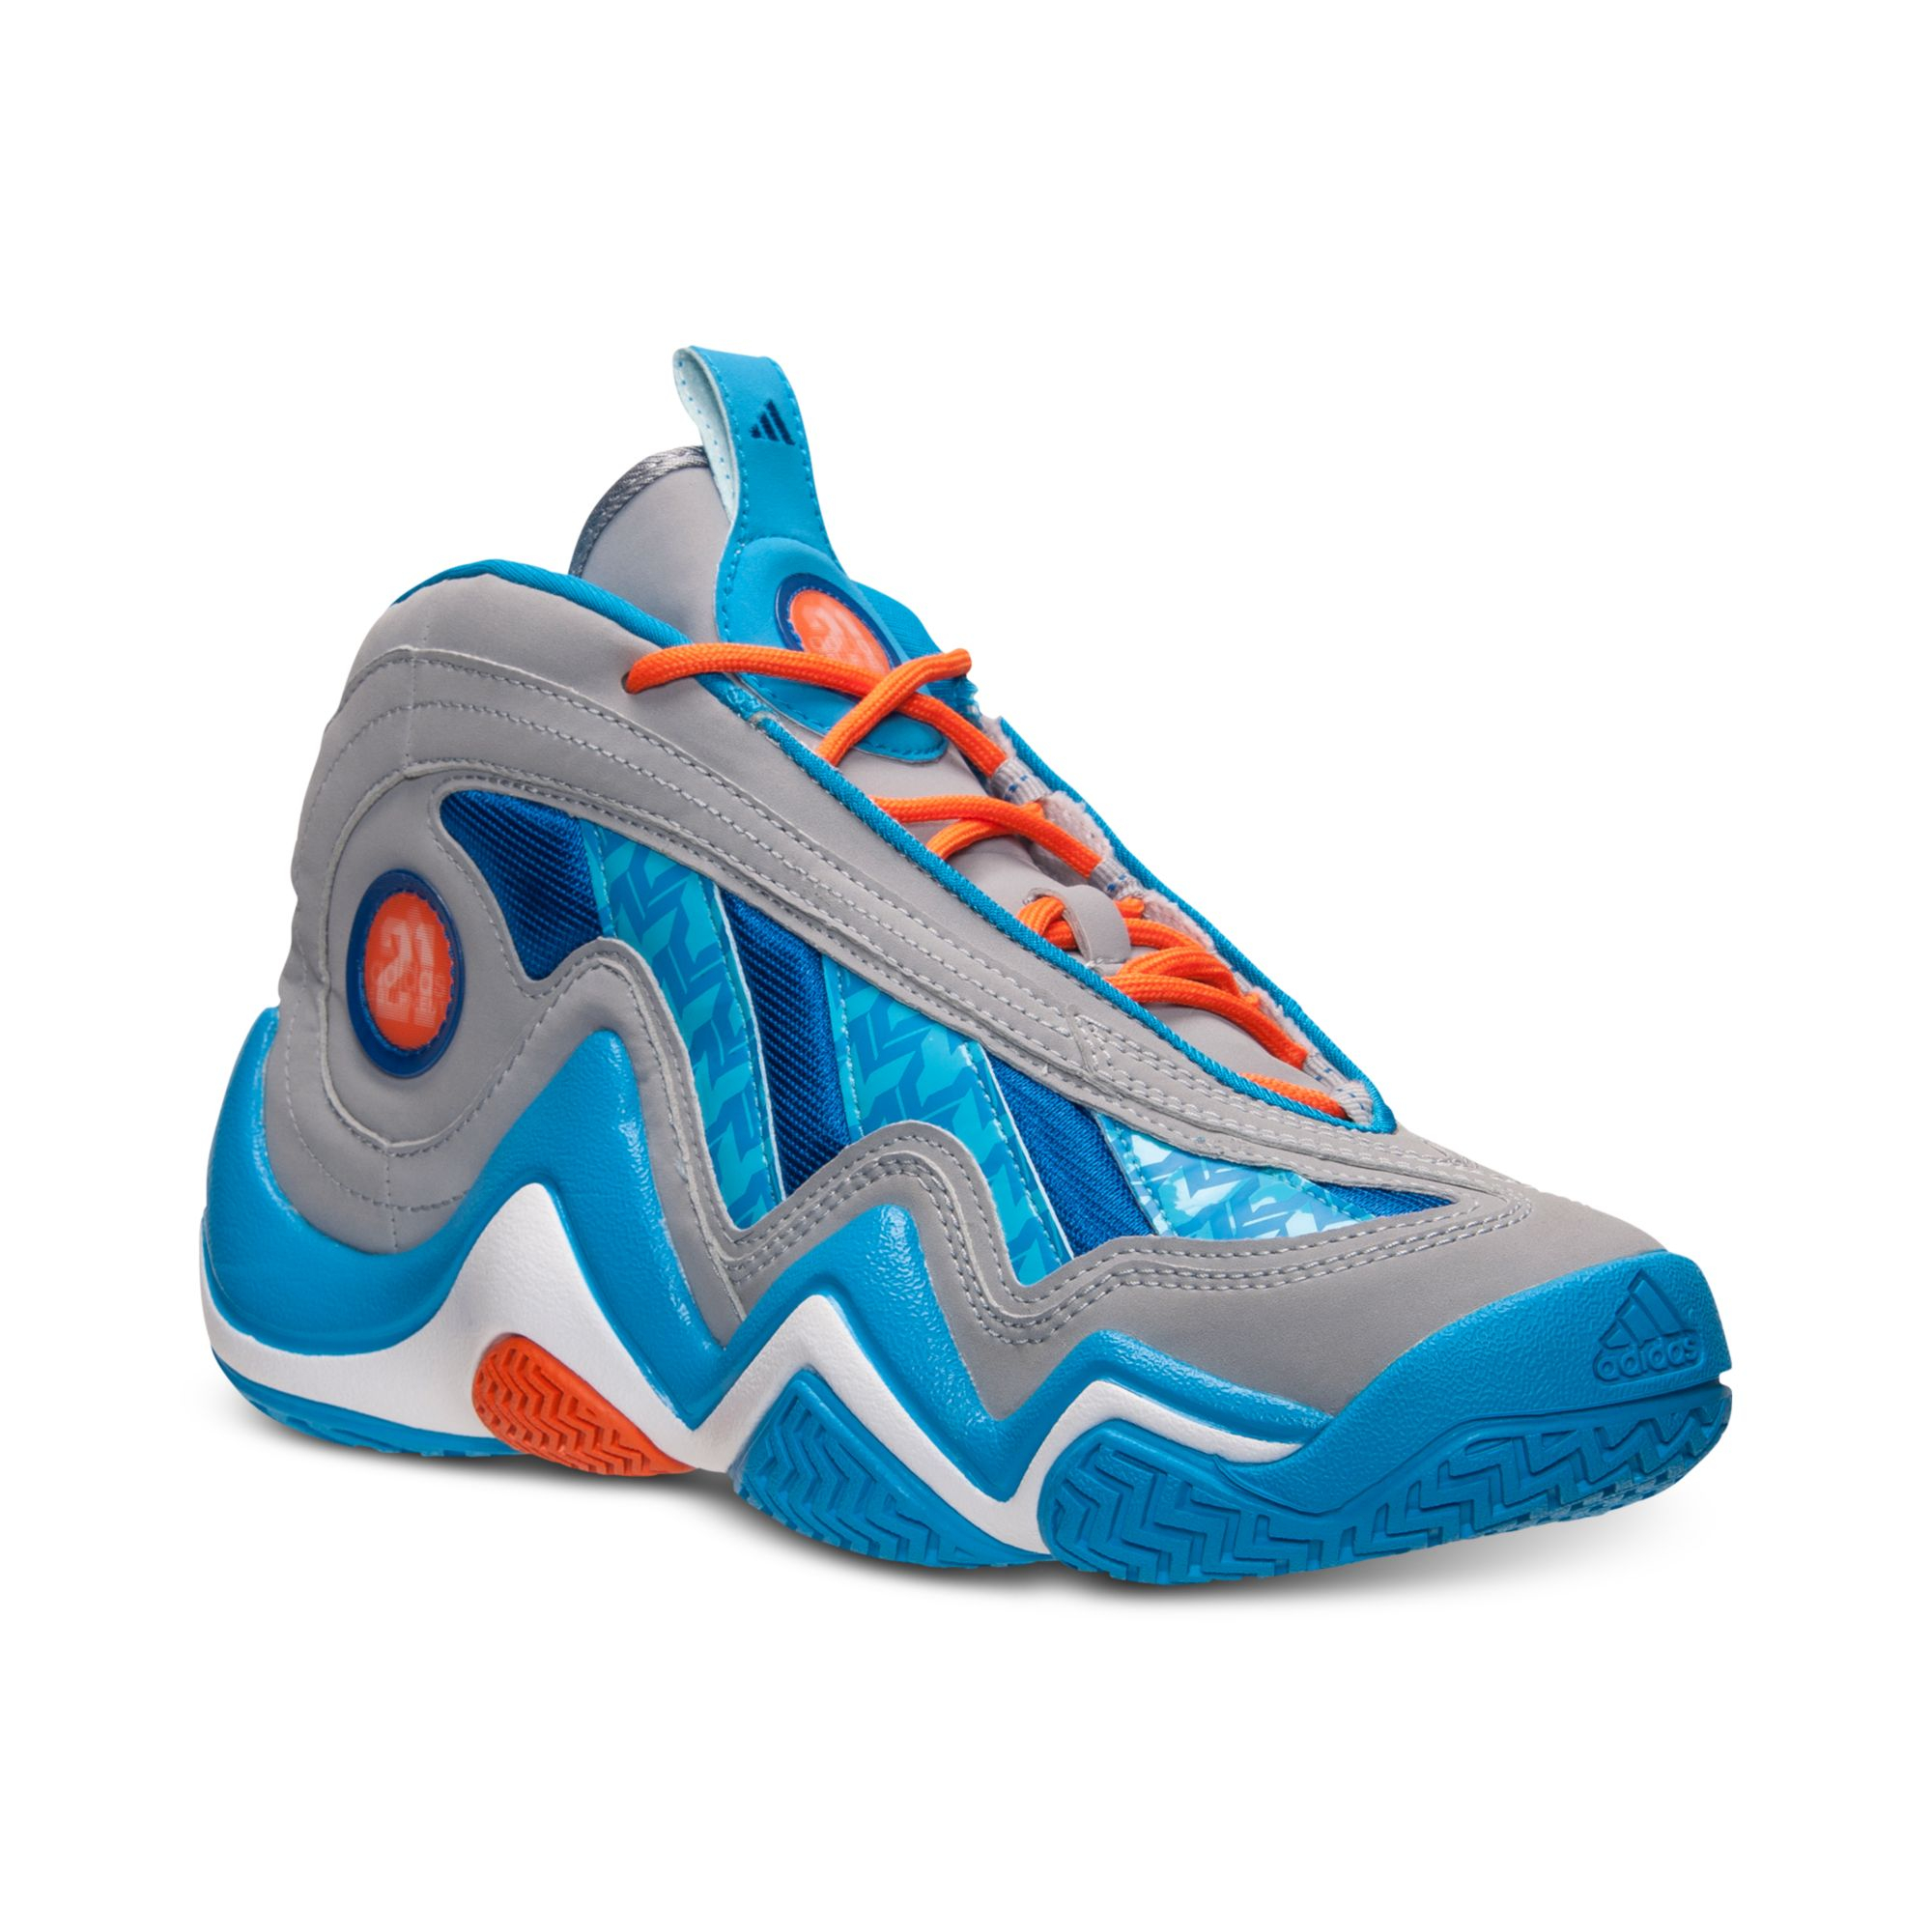 Adidas Mens Crazy 97 Basketball Sneakers From Finish Line